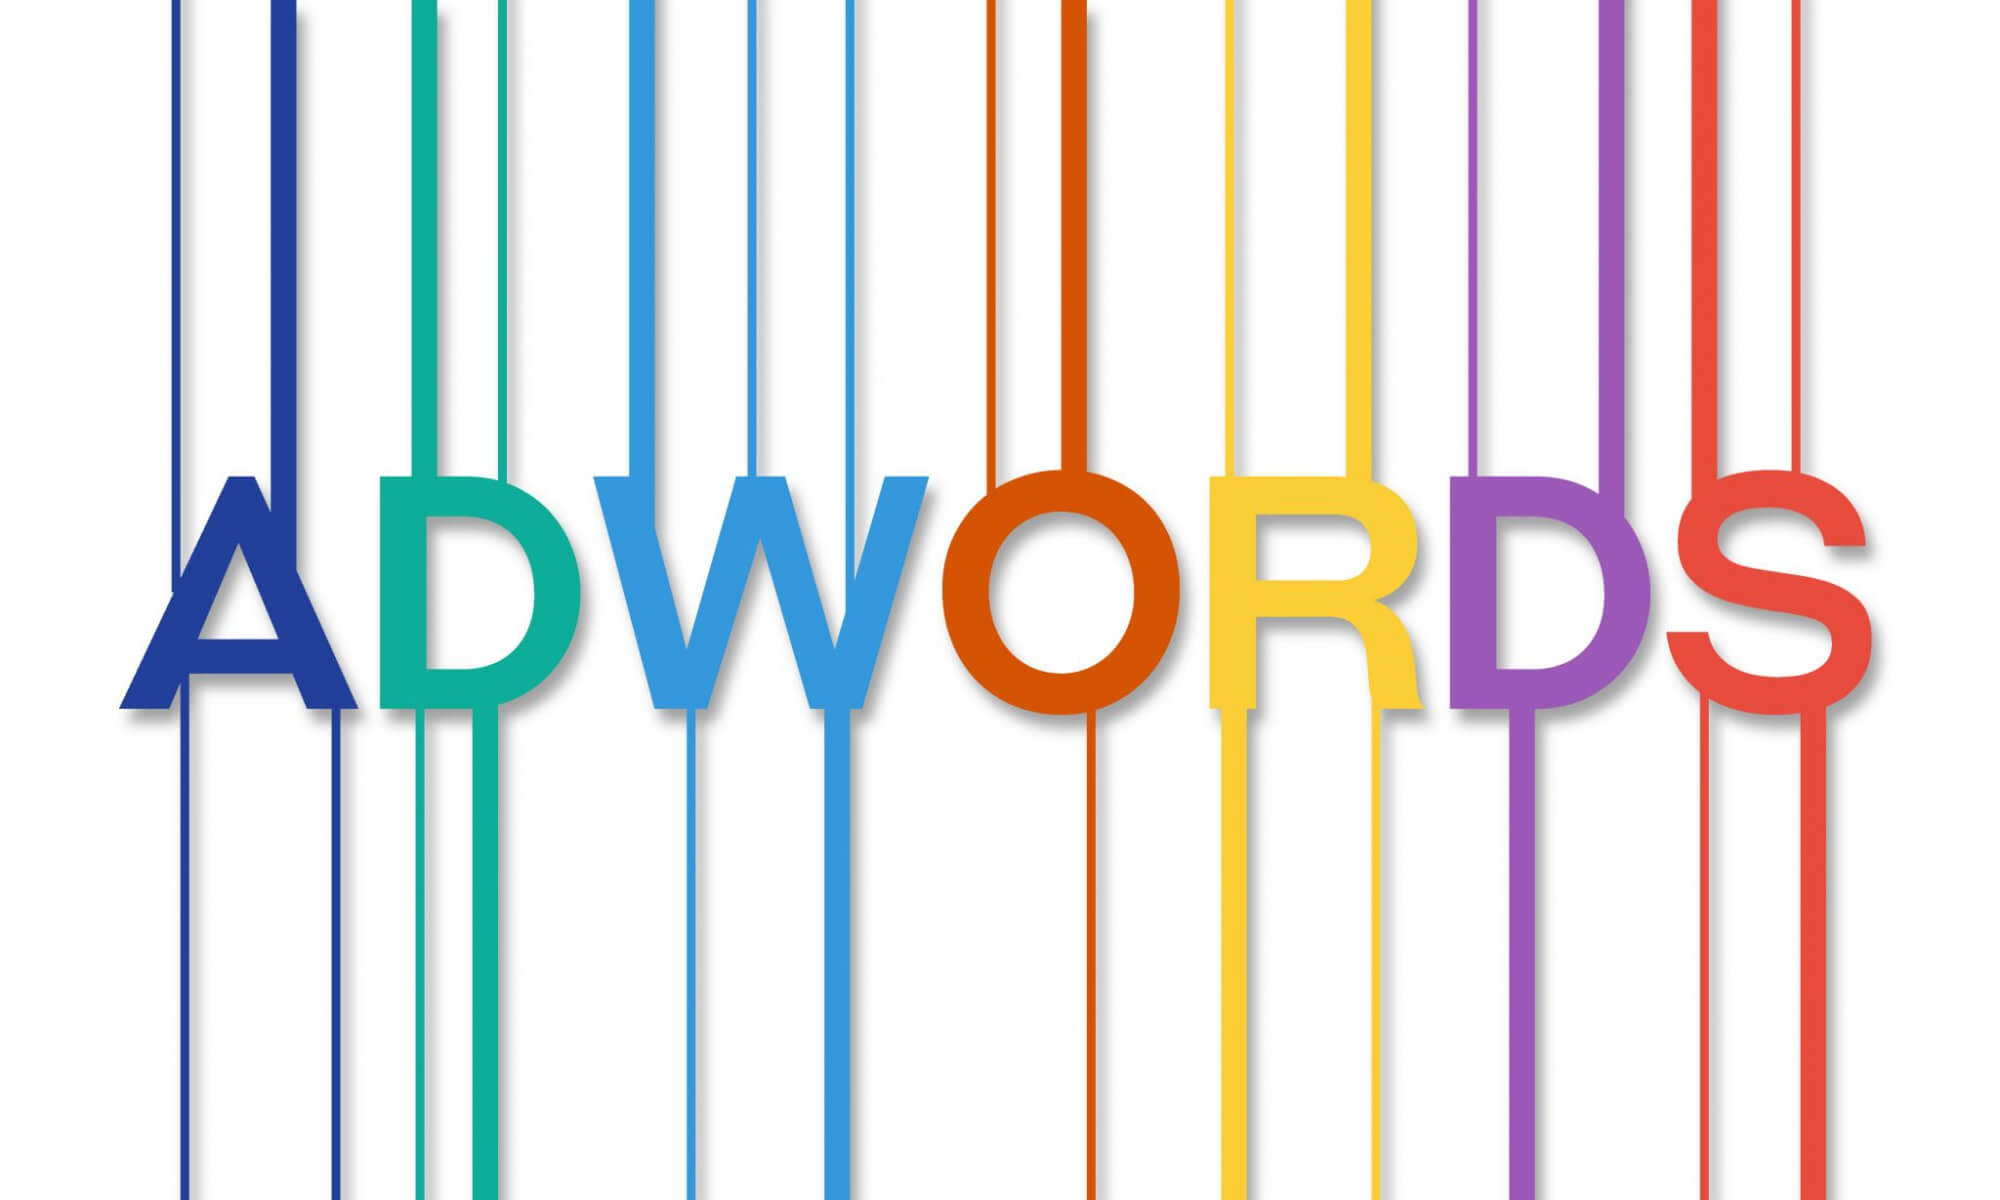 google-adwords-from-srn-hosting.jpg